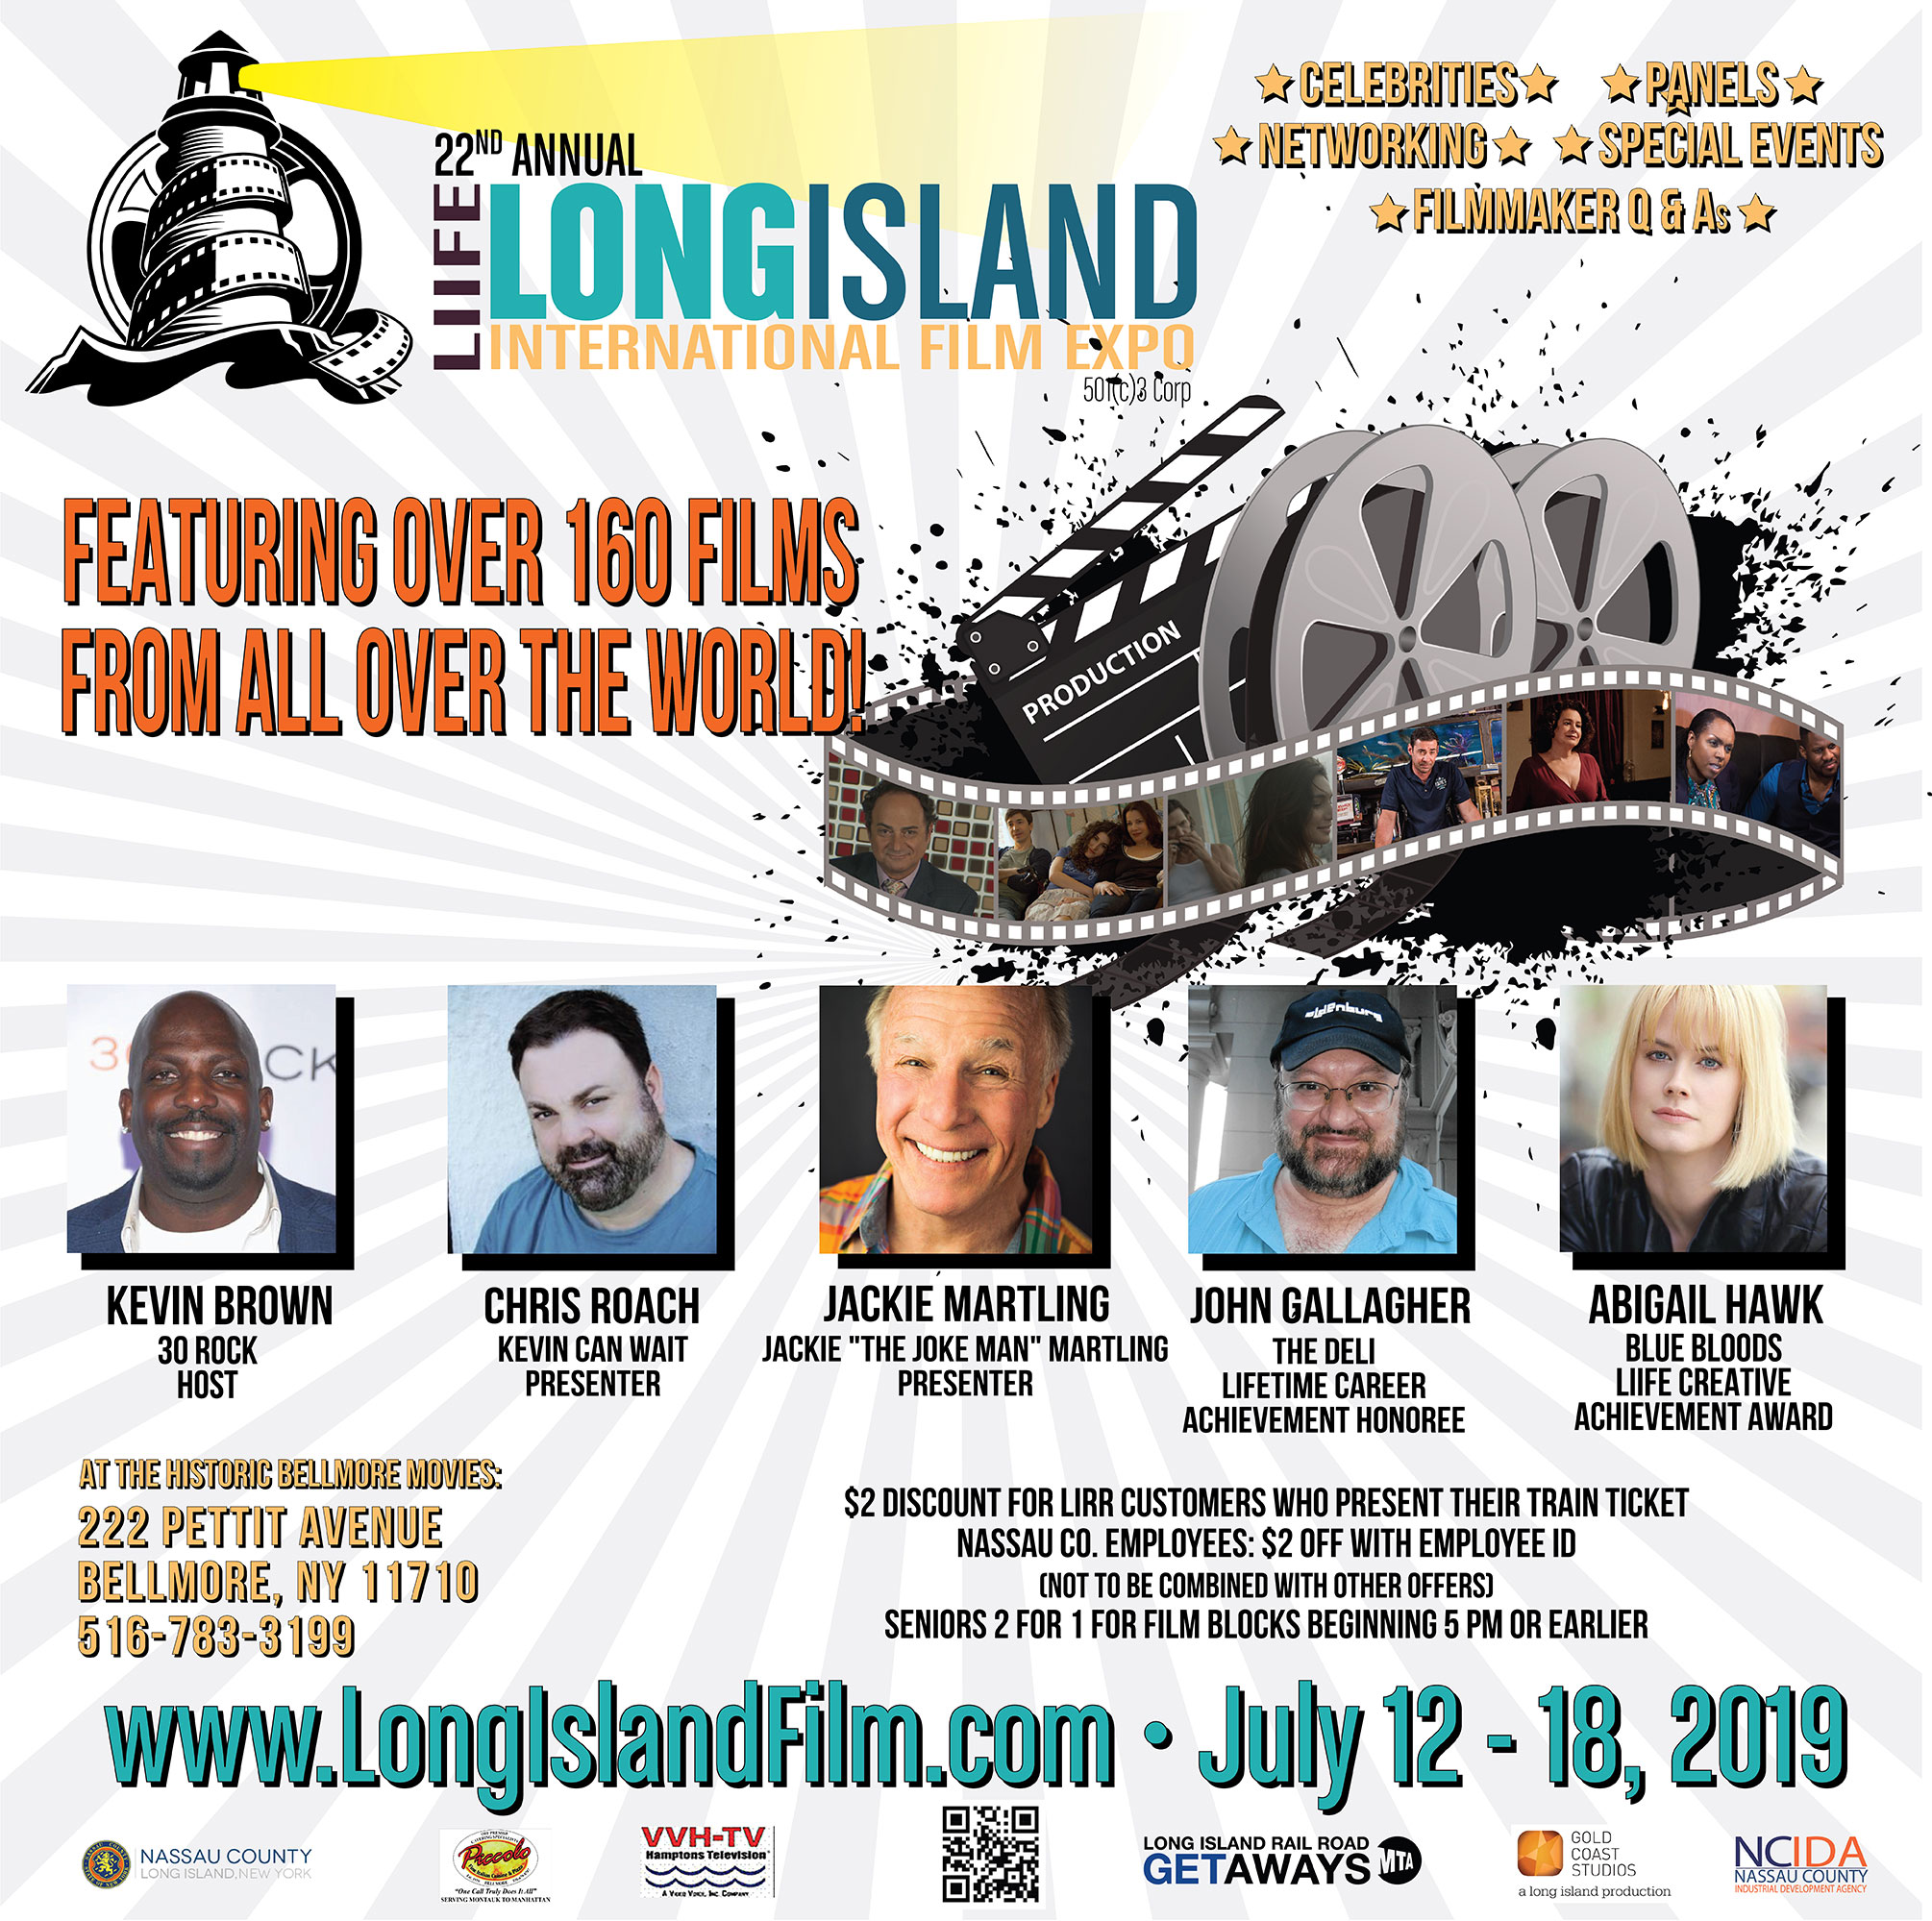 Kevin Brown hosts this summers Long Island International Film Expo |  Image Courtesy of LIIFE